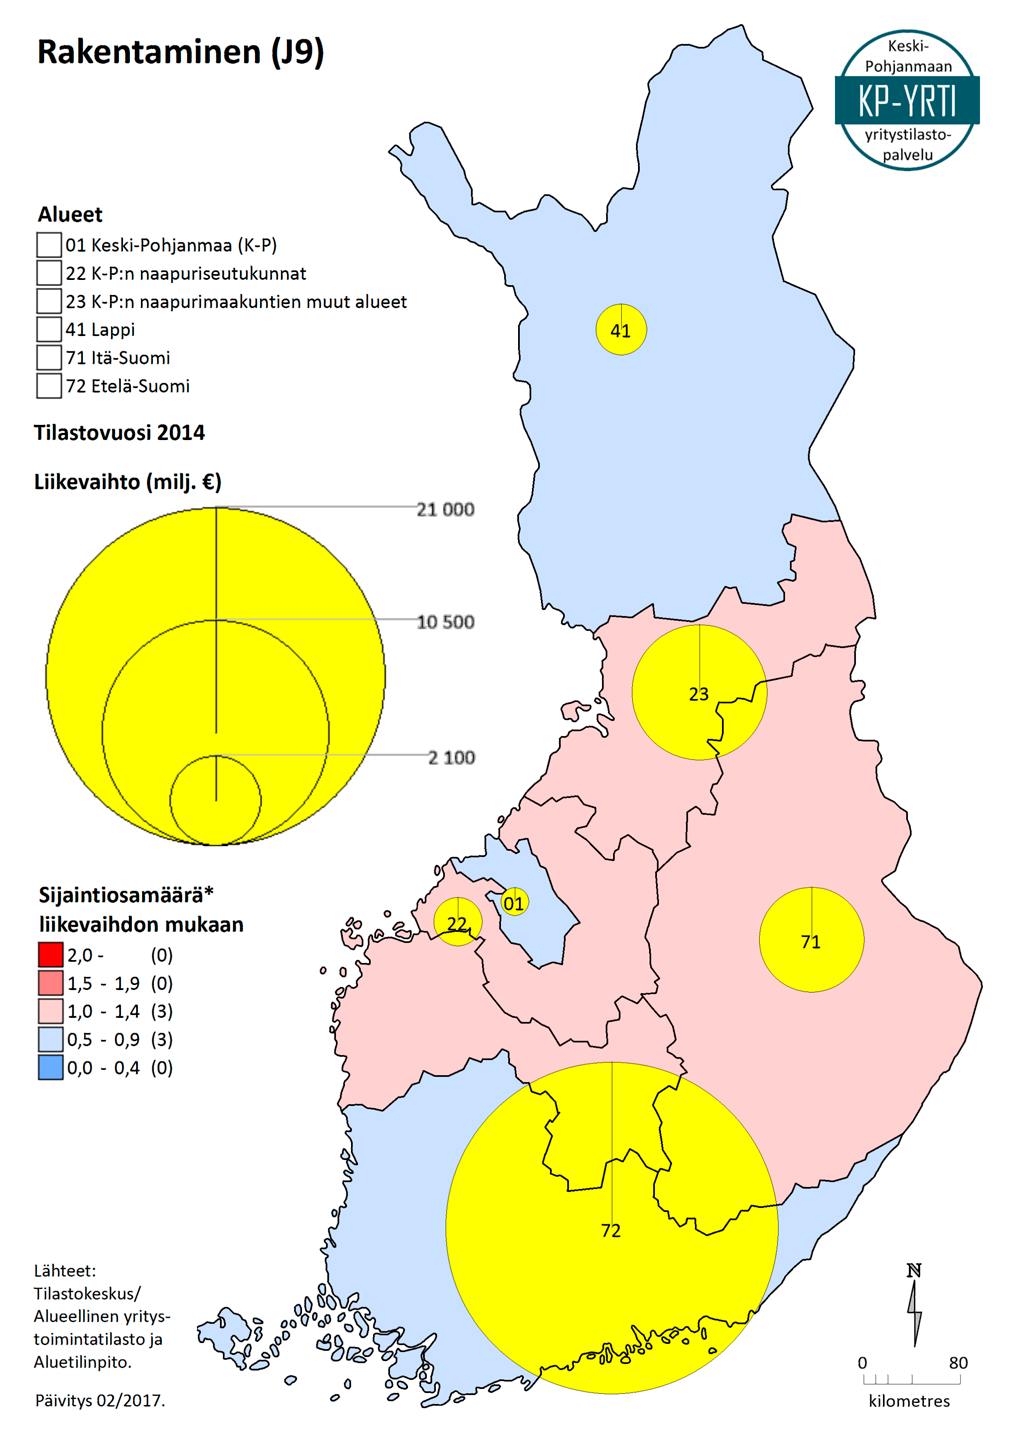 21-J9-map-lv-2014-p201702.png